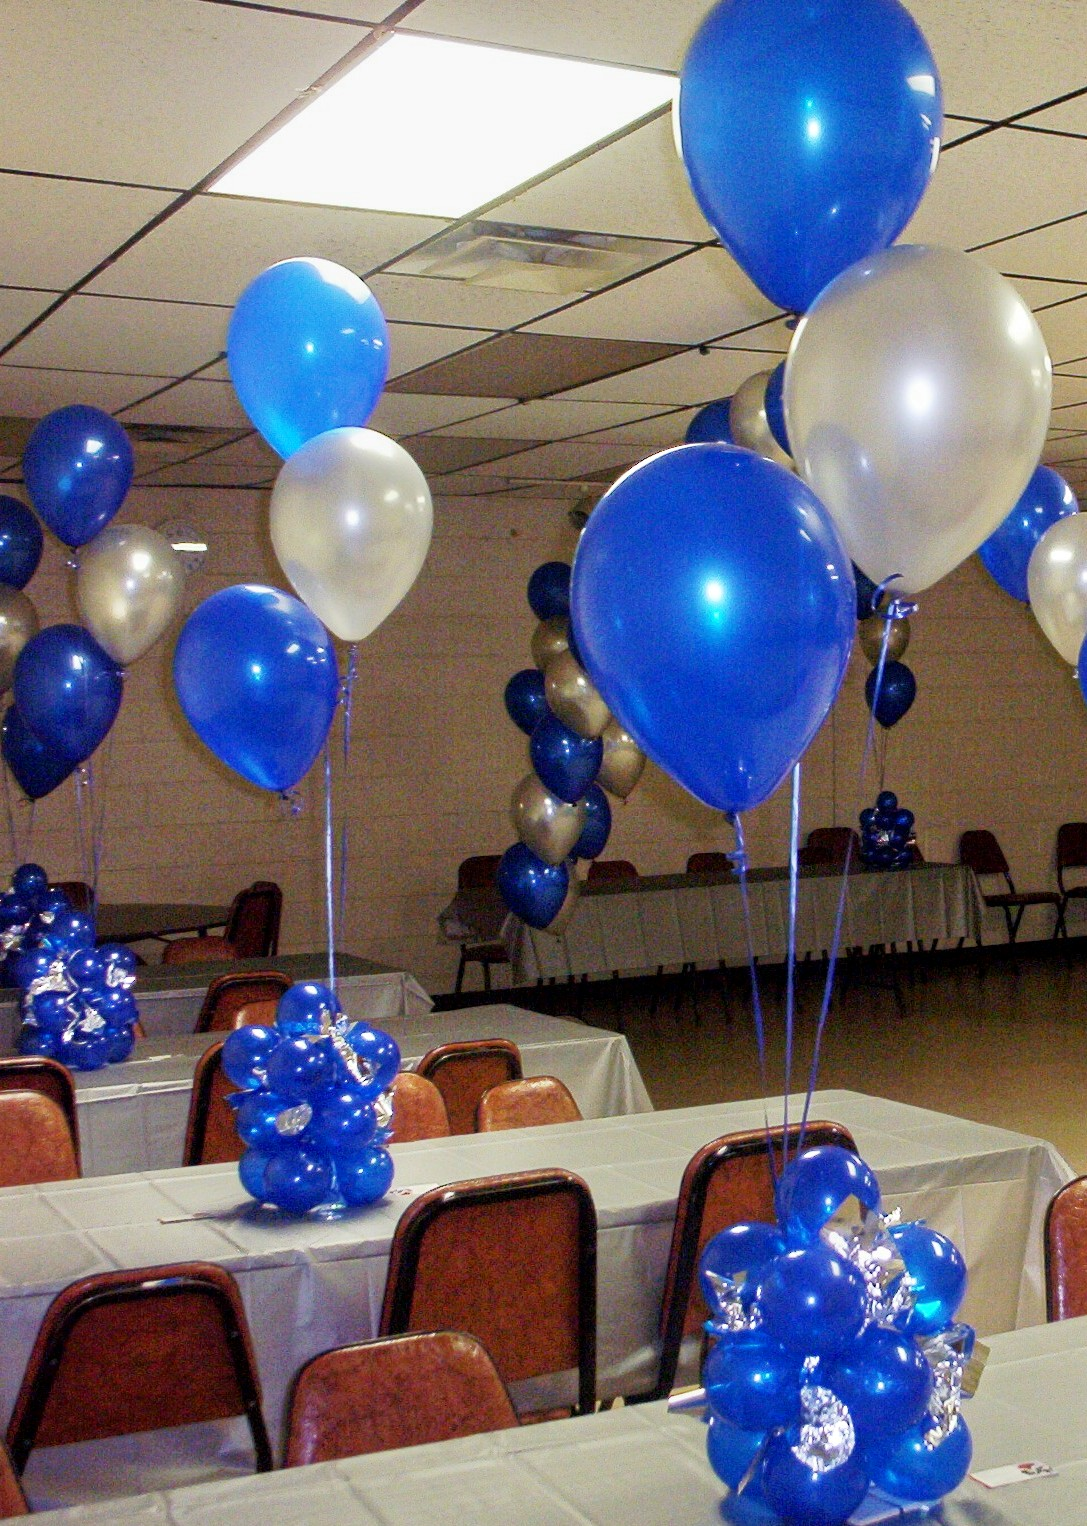 Balloonize your event